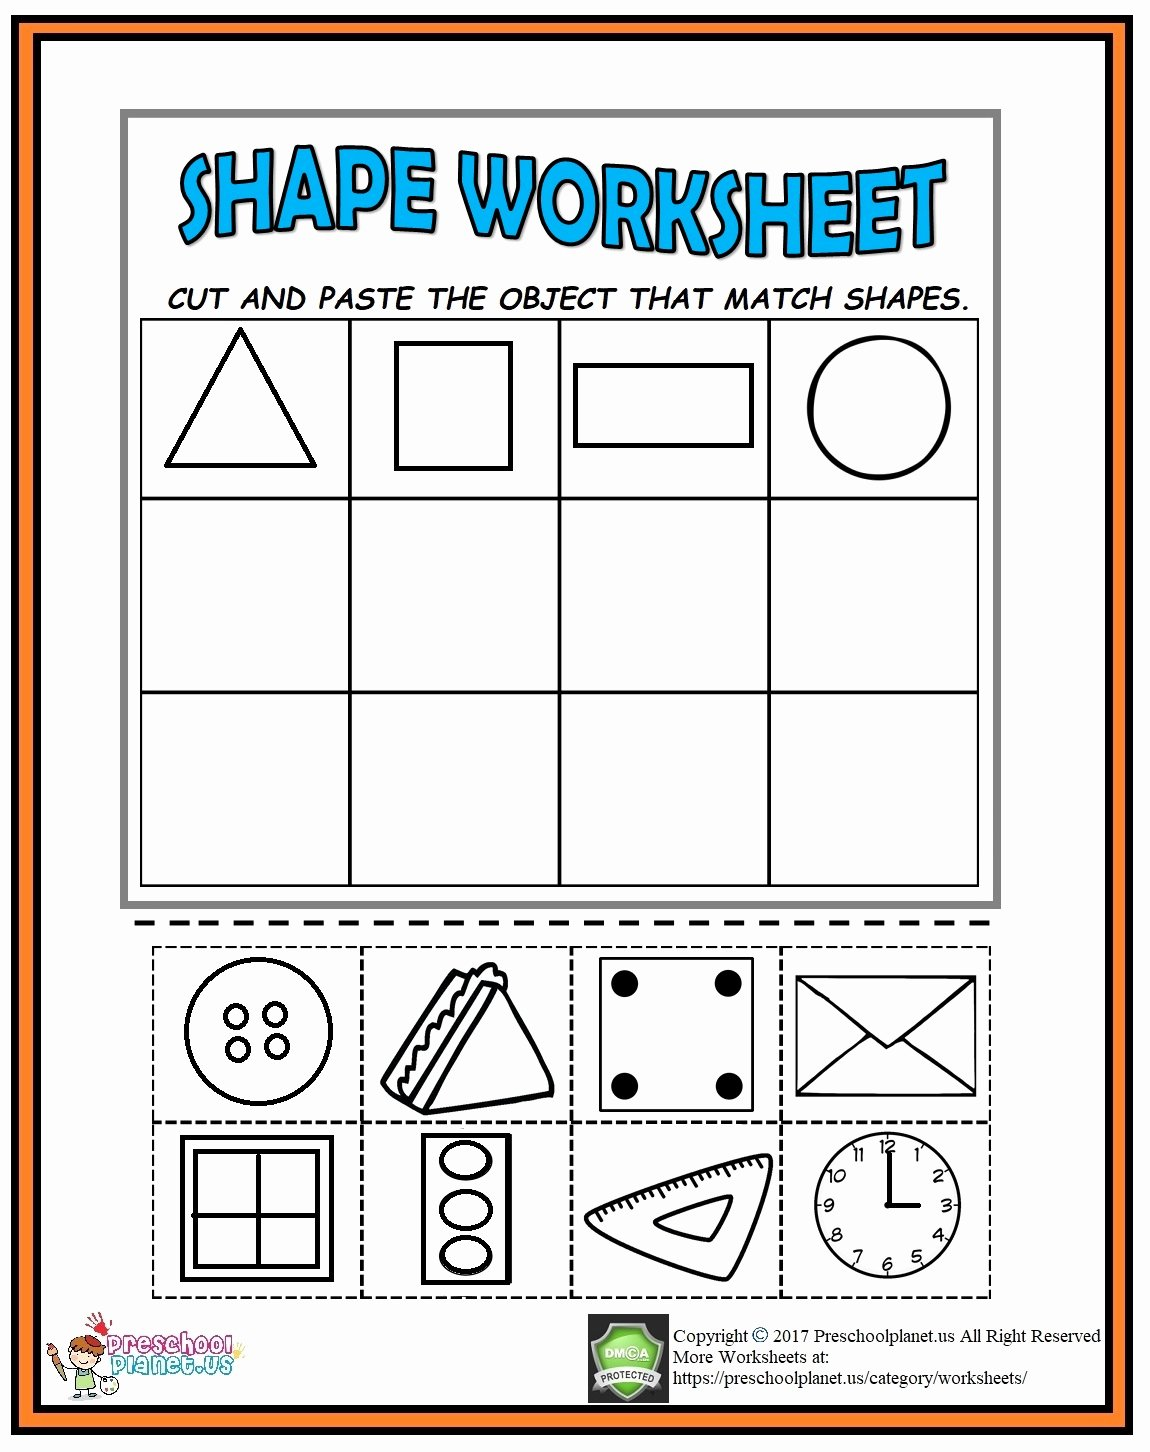 Cutting Shapes Worksheets for Preschoolers top Cut and Paste Shape Worksheet Preschoolplanet Cutting Shapes